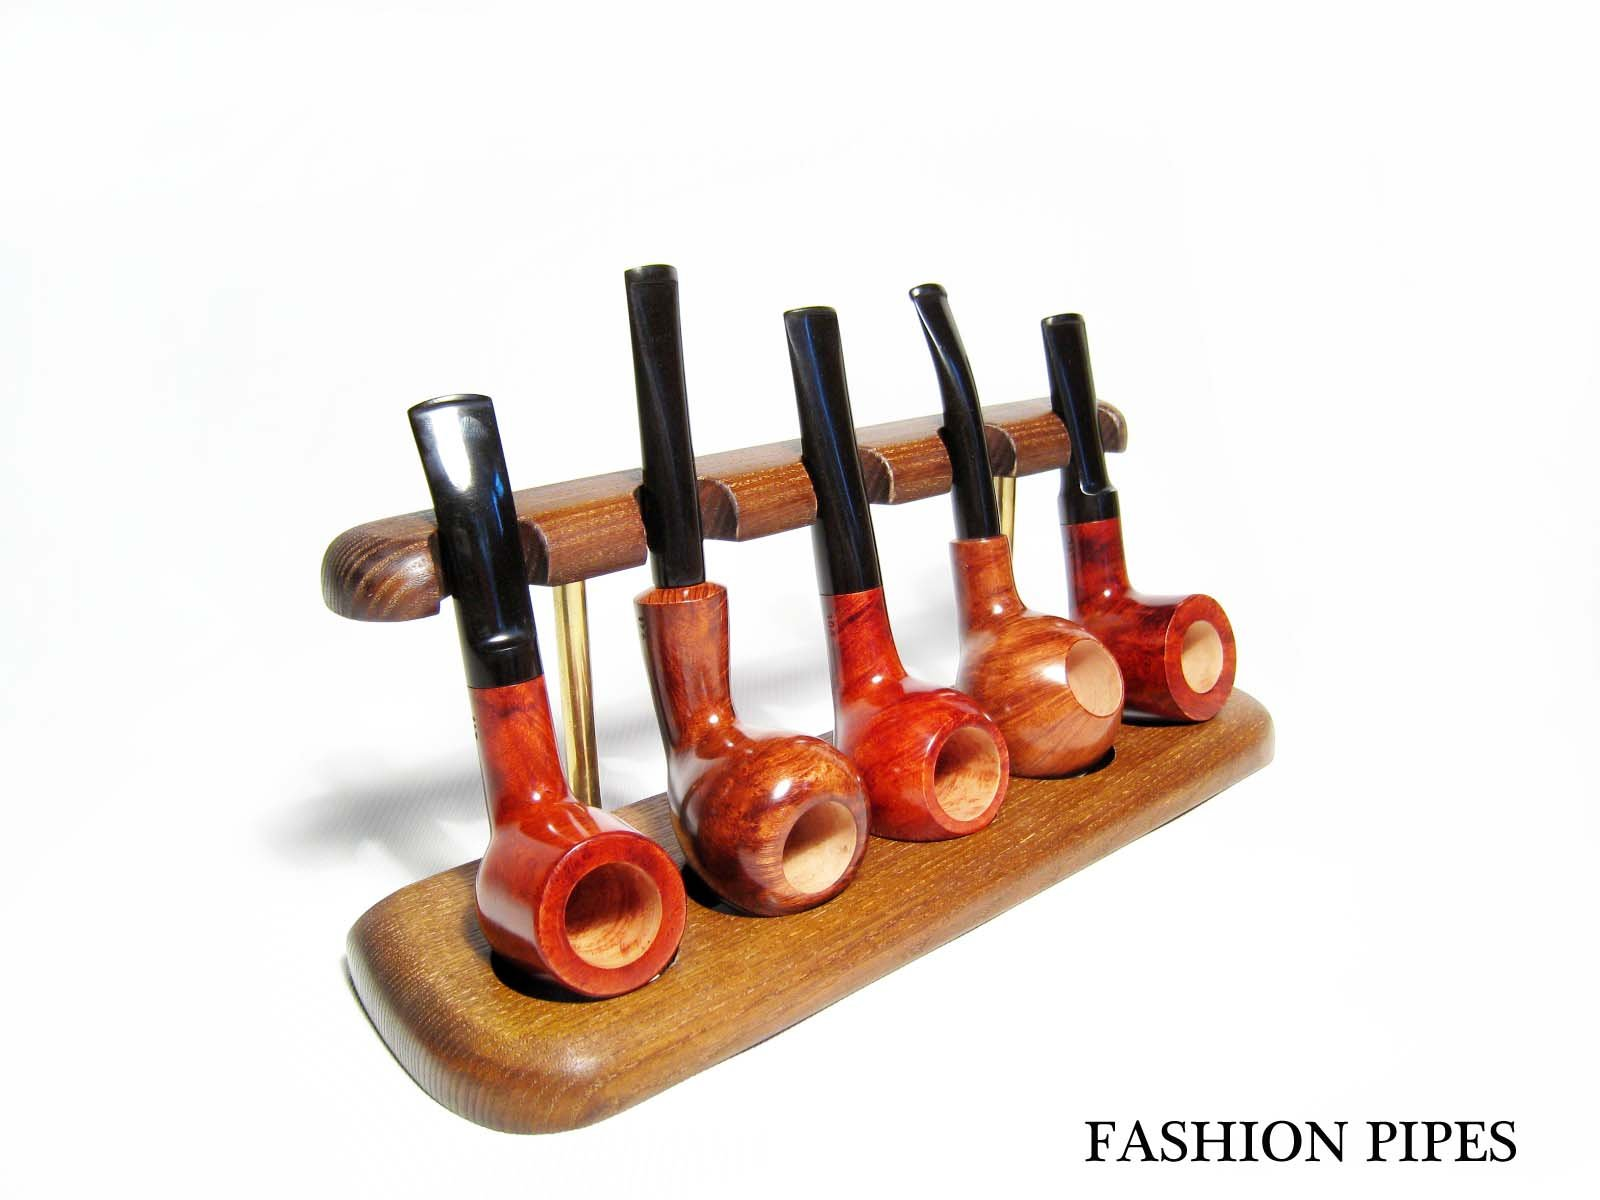 New Wooden Pipe Stand Rack Holder for 5 Tobacco Pipes. Handcrafted (5)